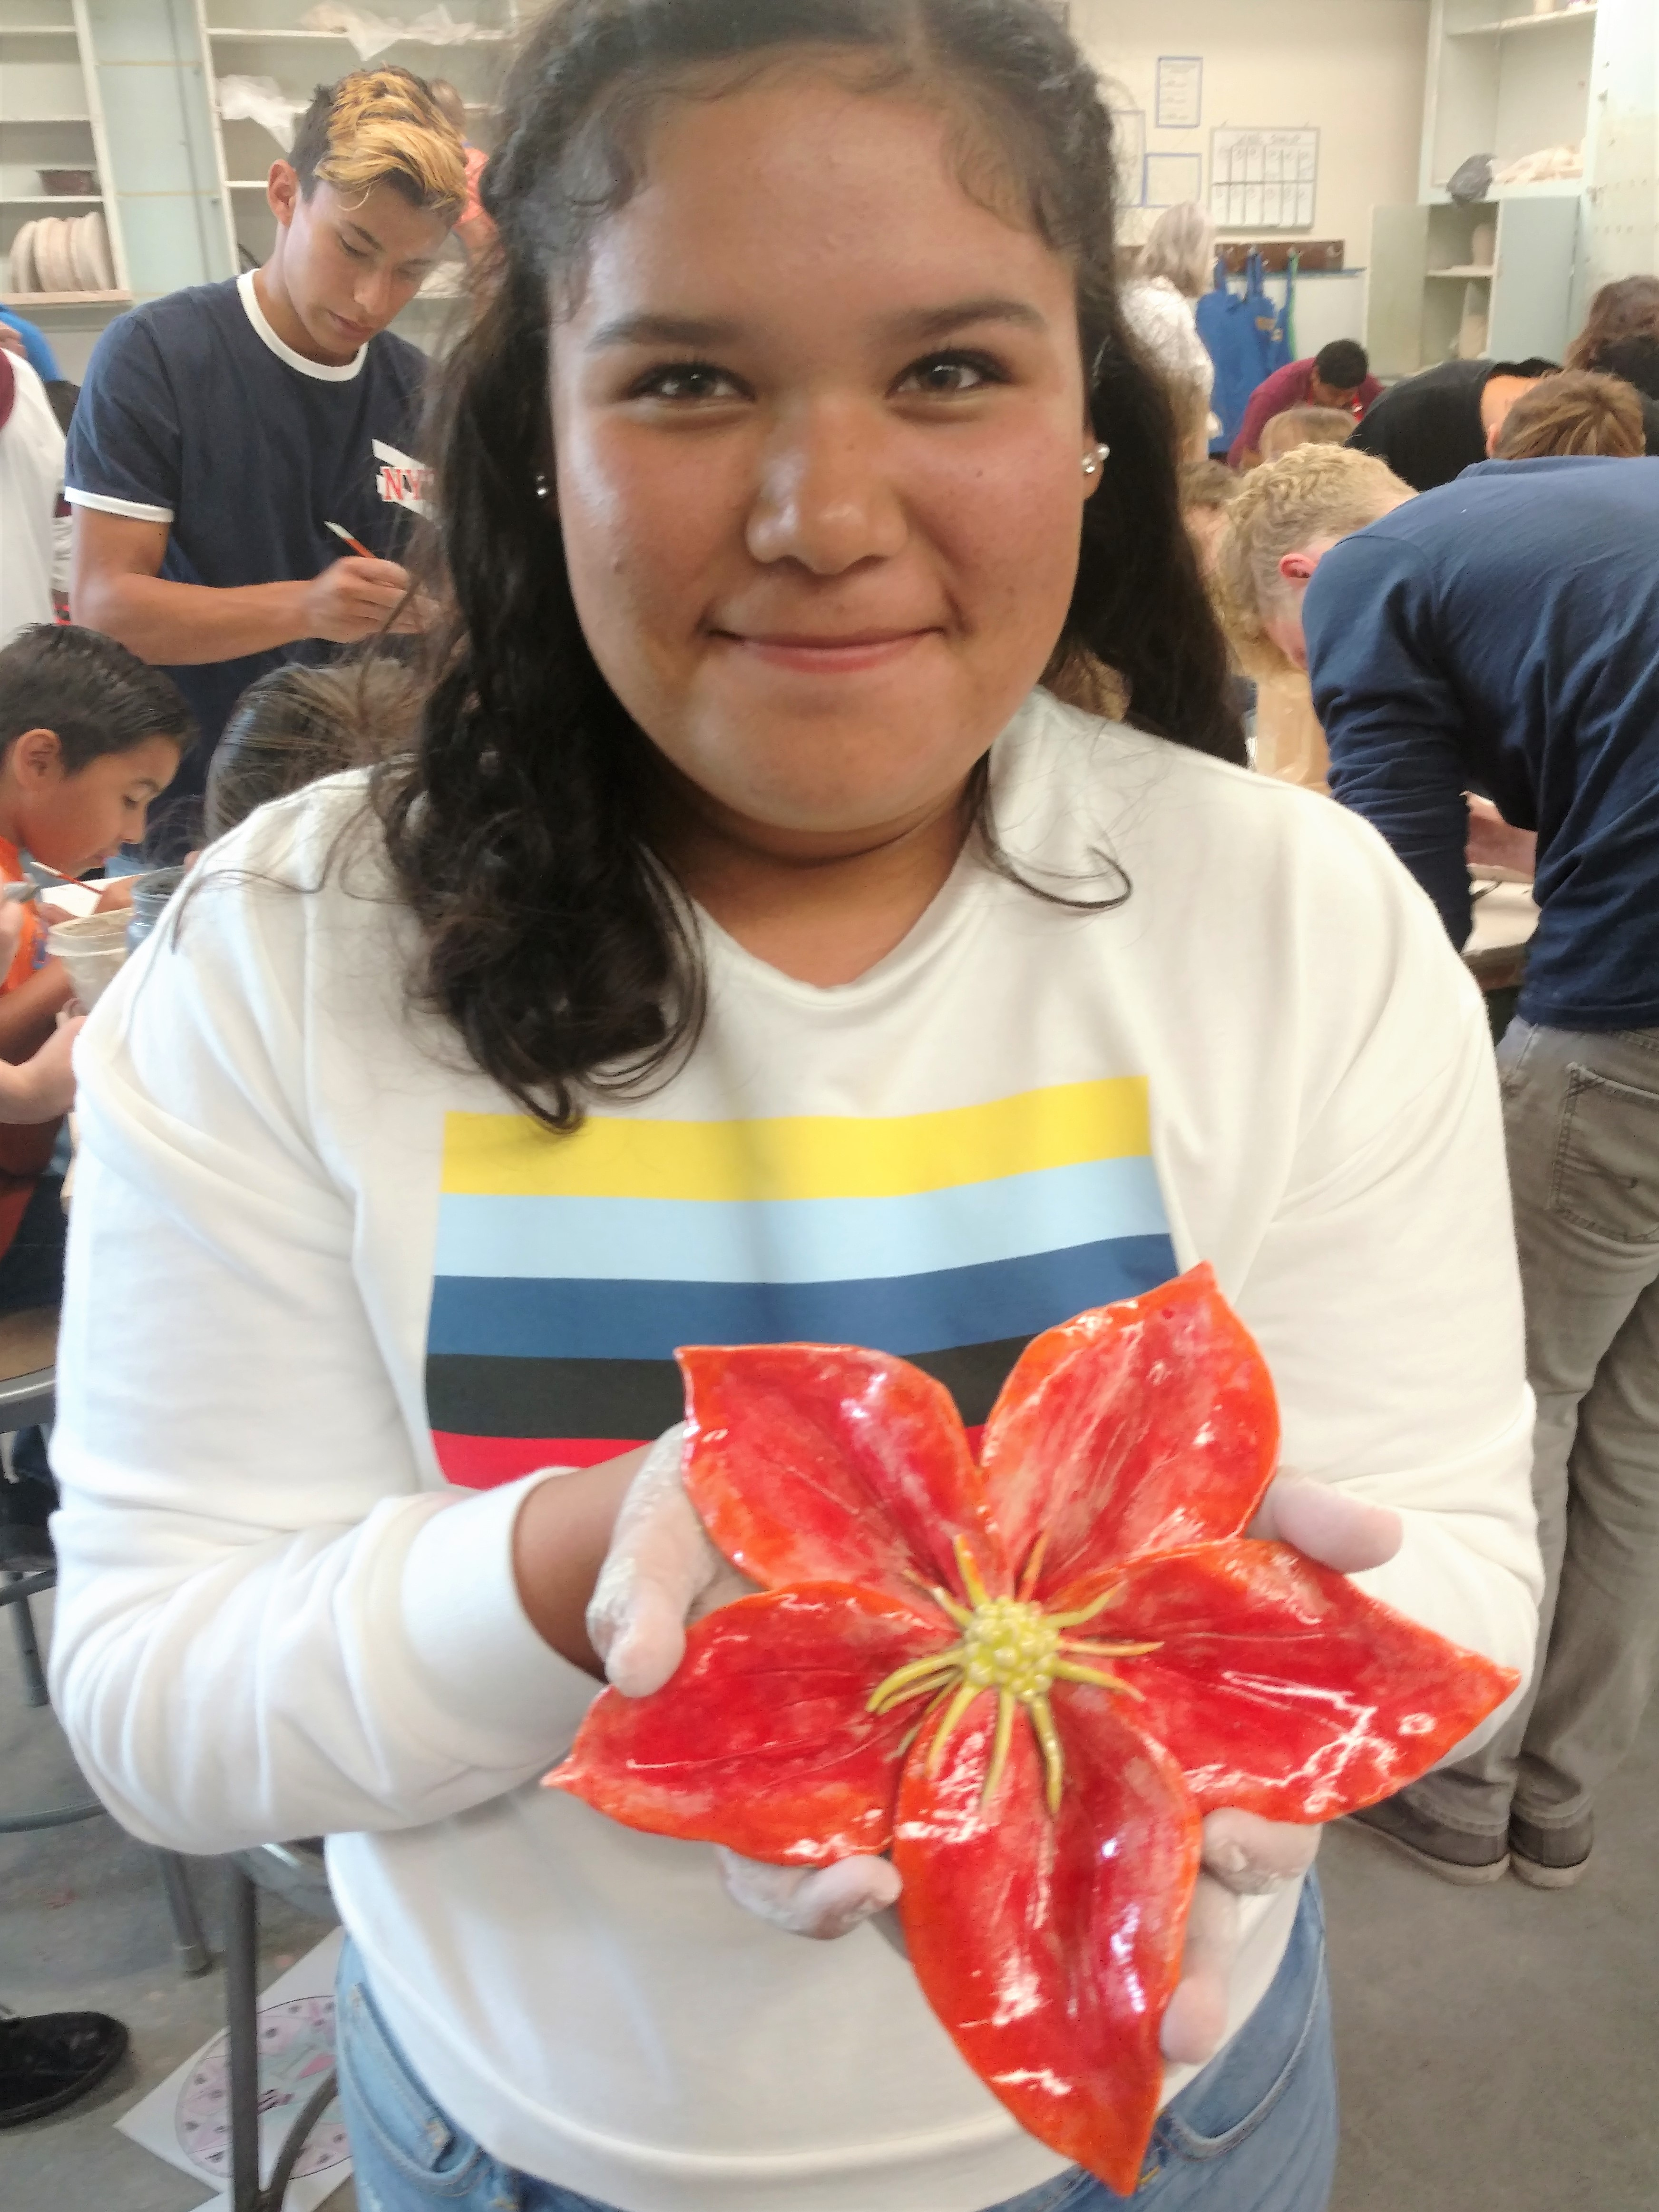 A girl holding up a ceramic flower